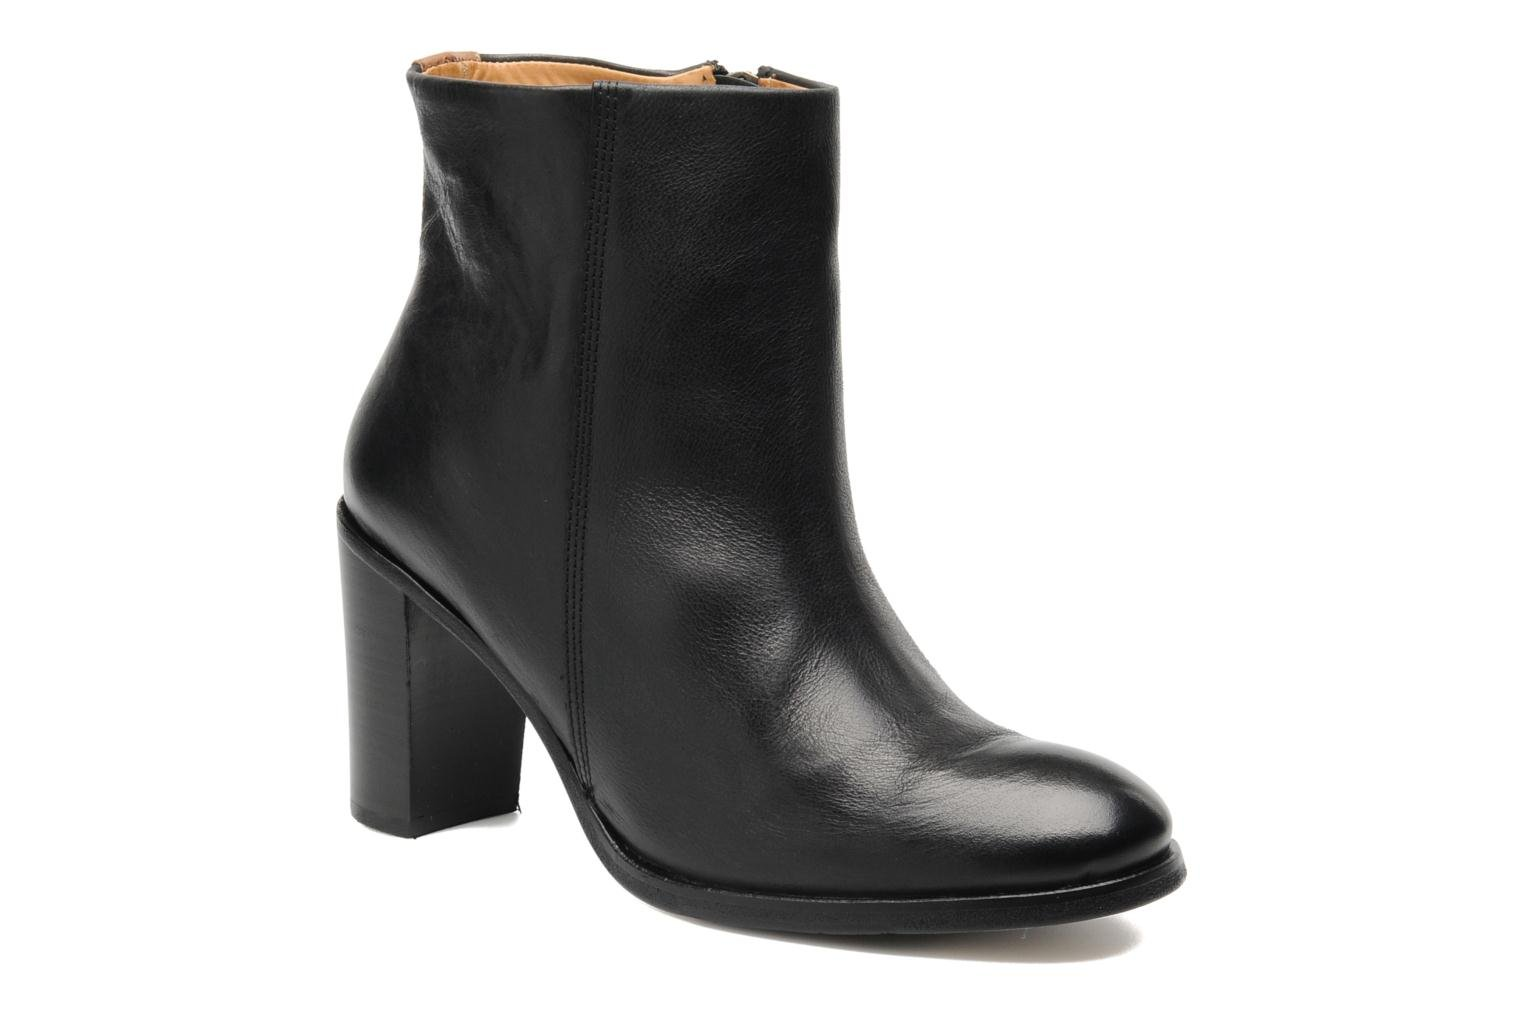 Boots en enkellaarsjes Jolie Base bootie by Royal Republiq